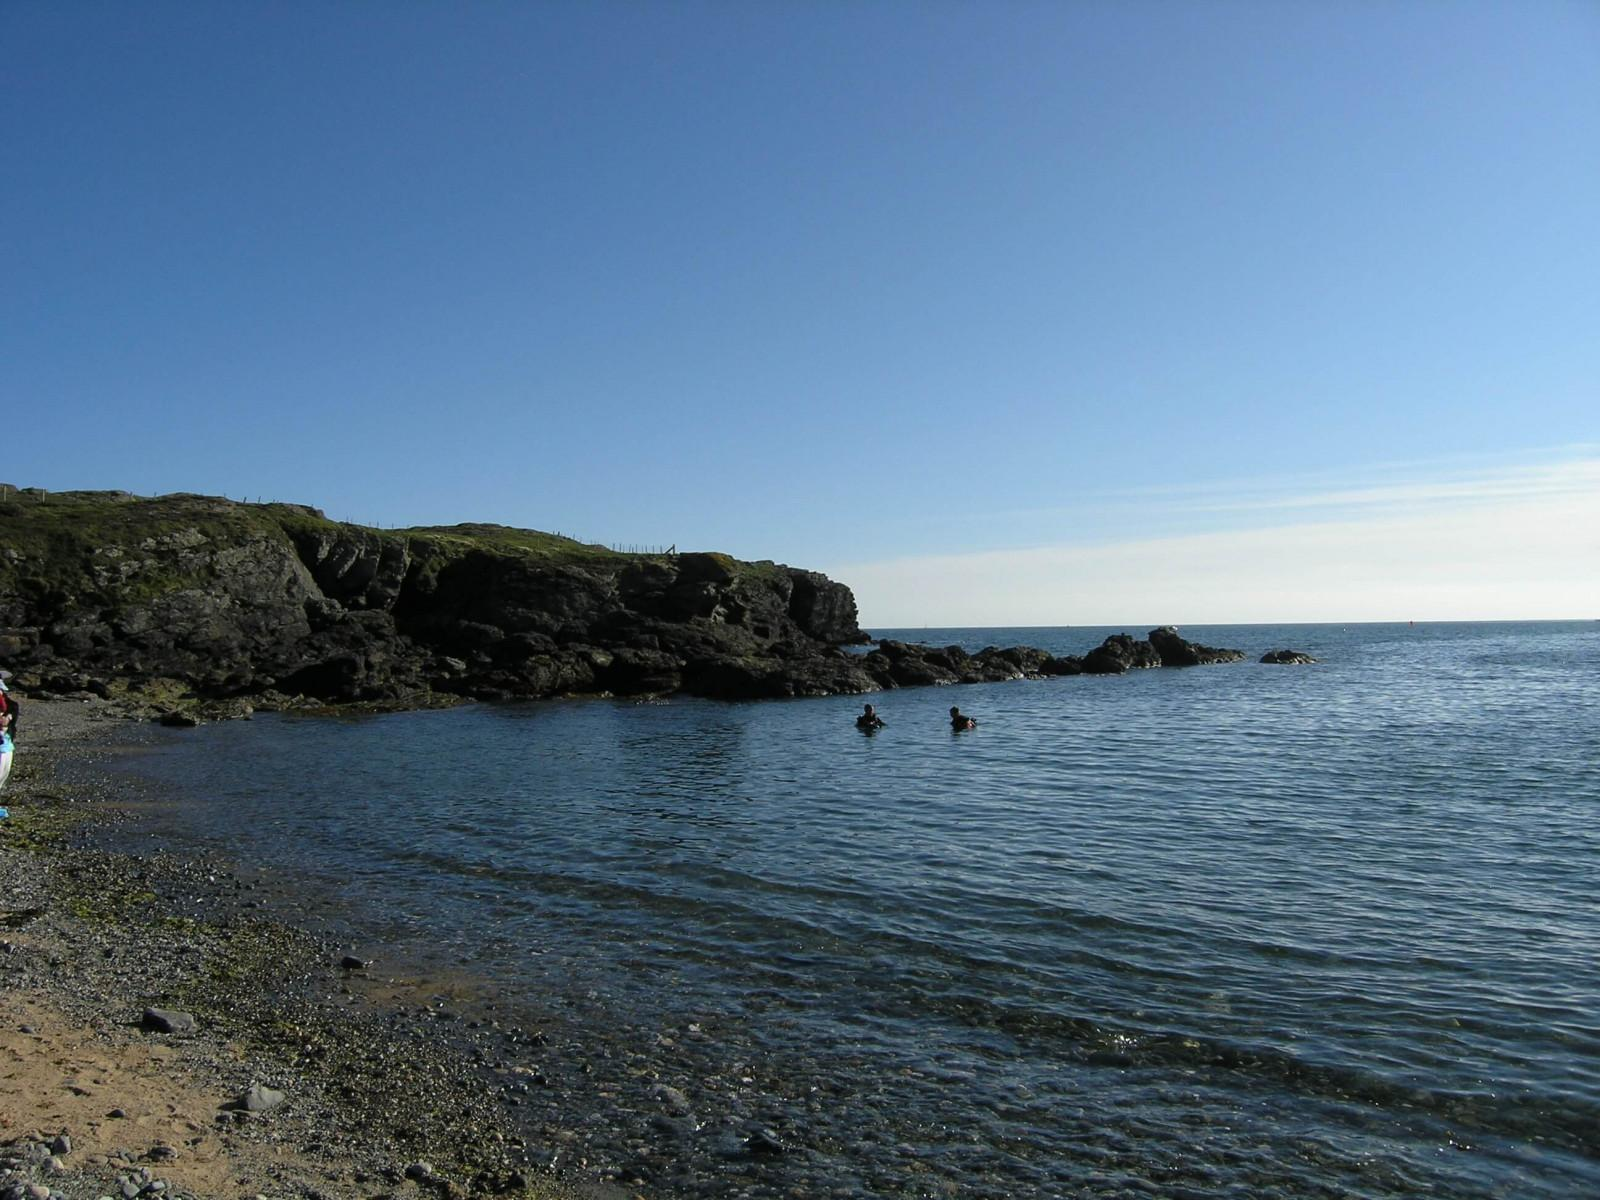 Porth Dafarch, west coast of Anglesey in North Wales